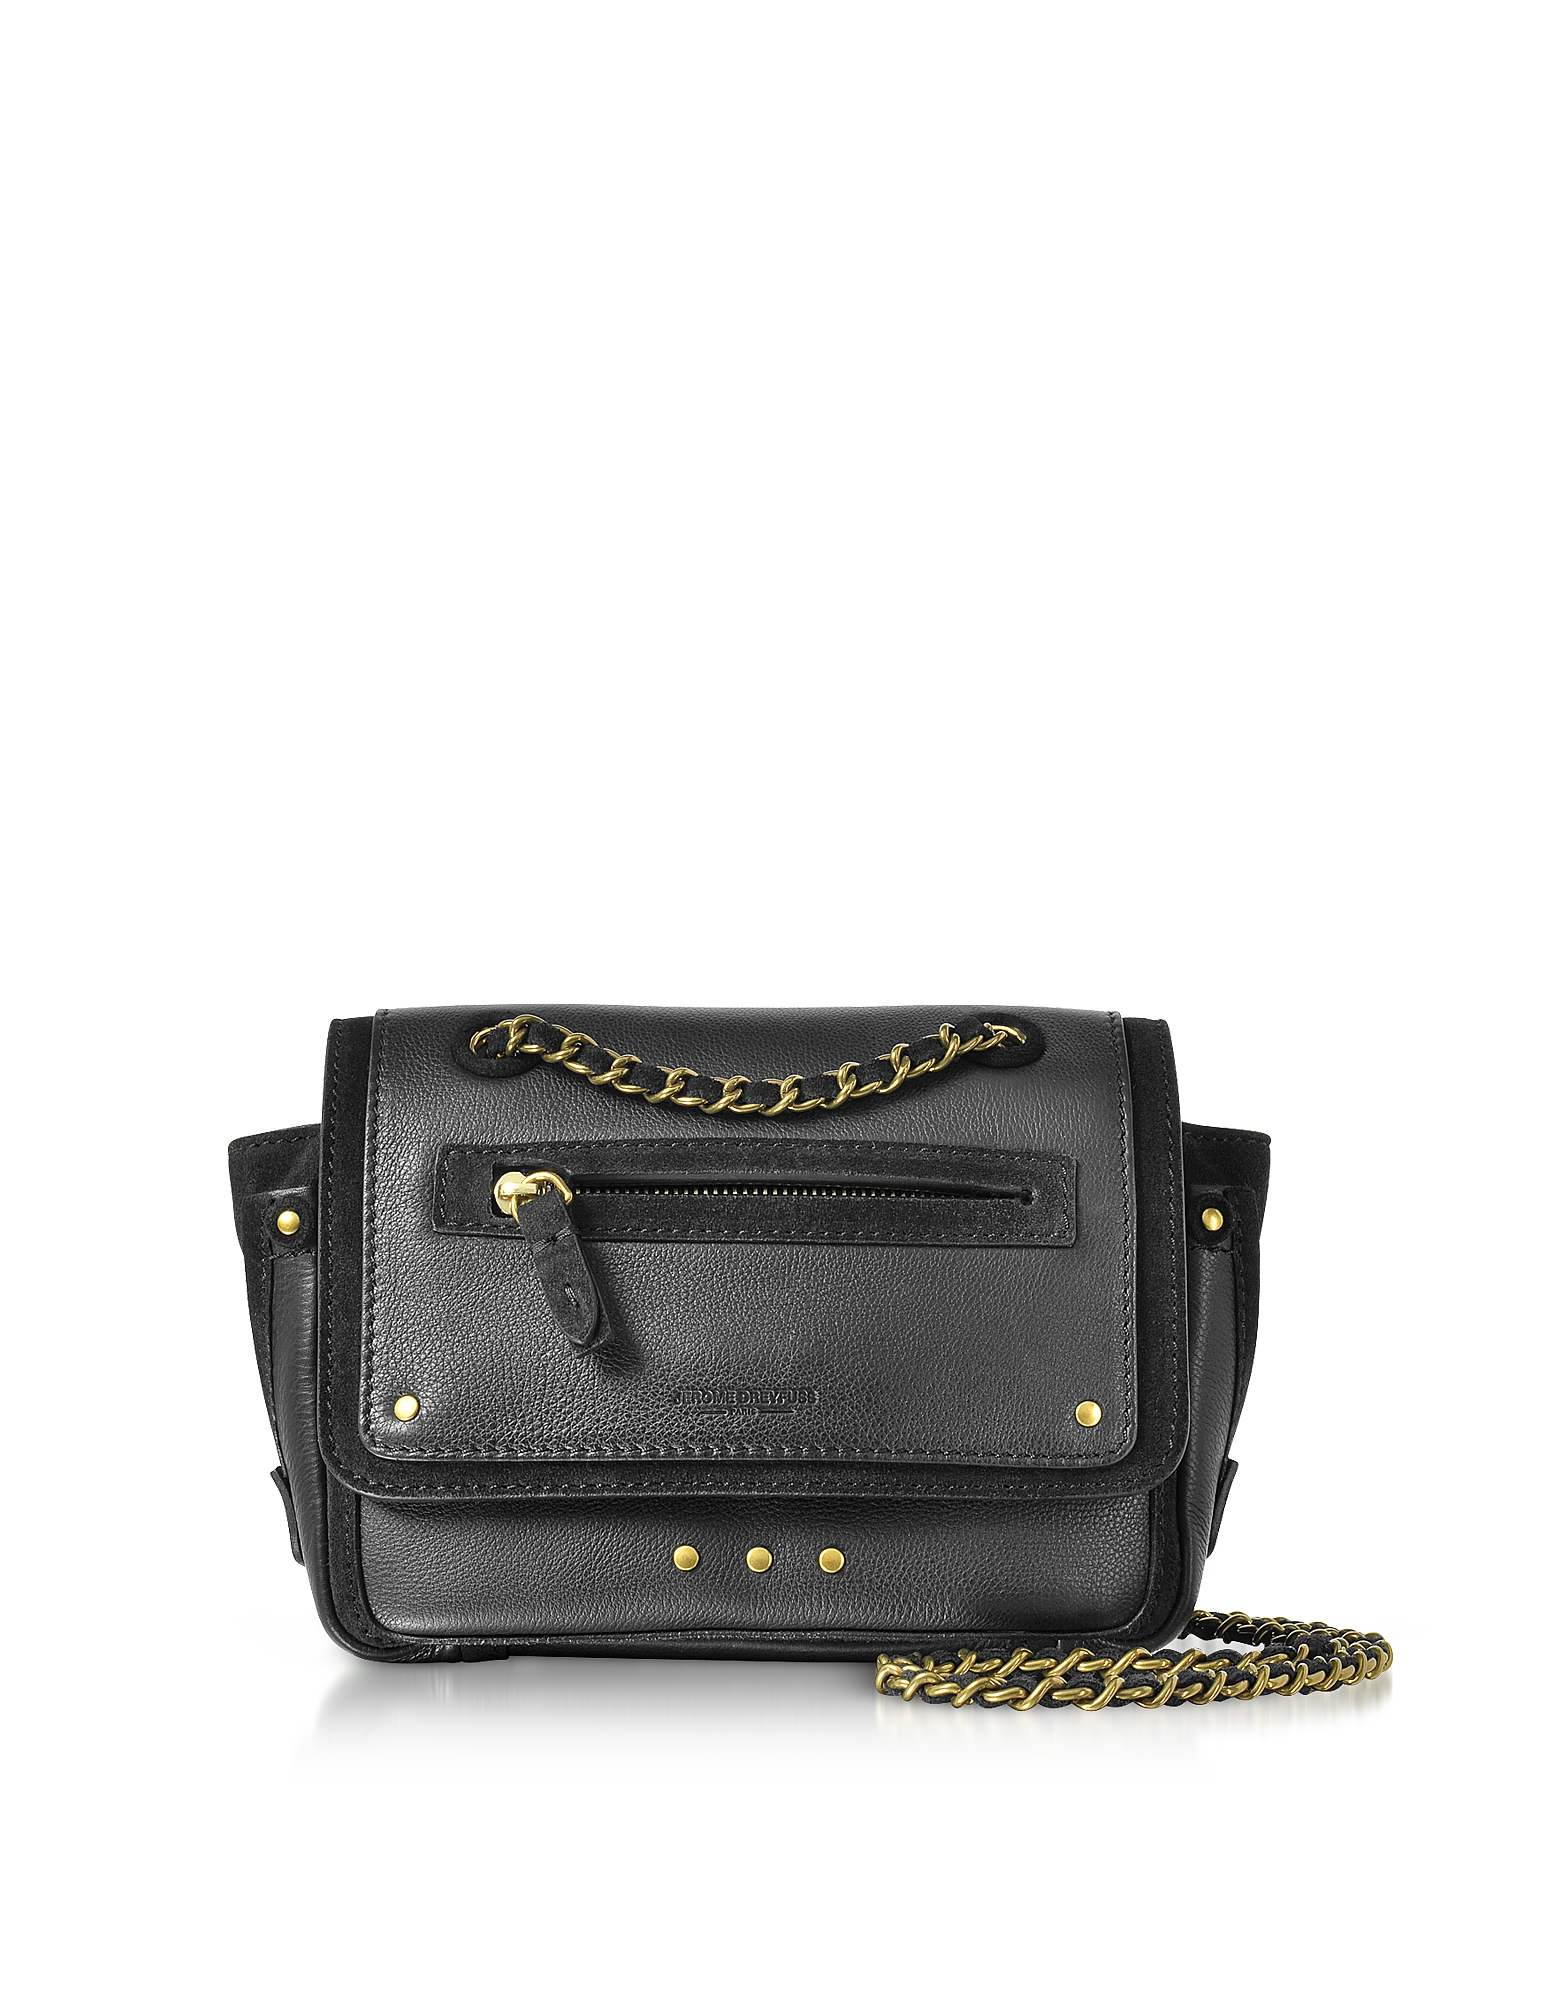 Jerome Dreyfuss Handbags, Benji Leather and Suede Mini Crossbody Bag